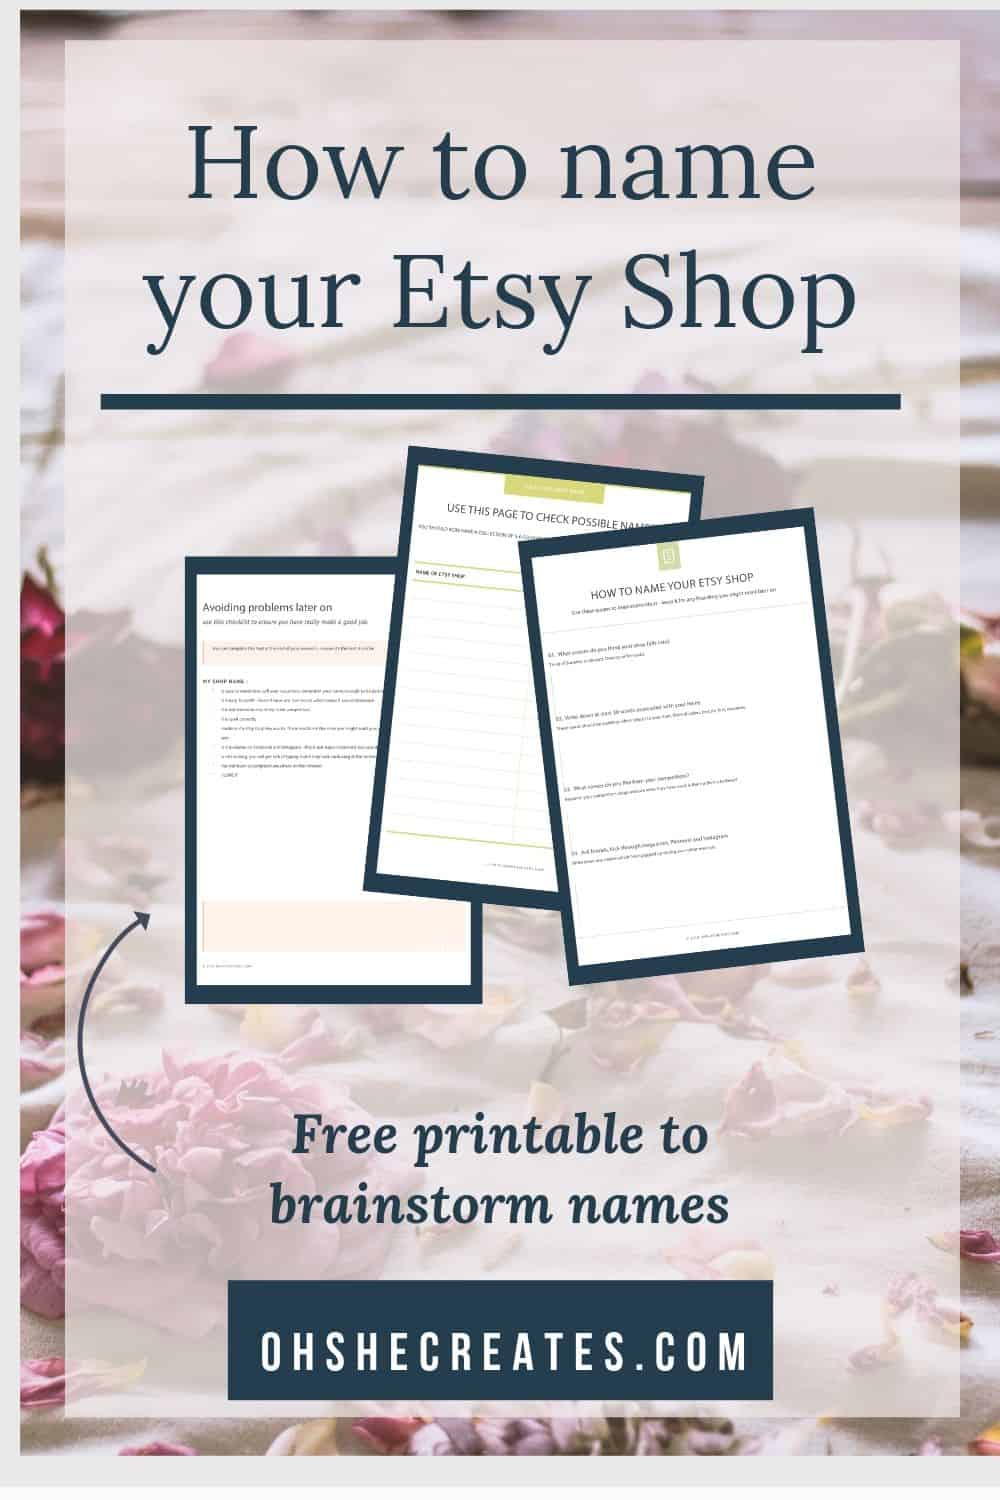 How to name your etsy shop - printable